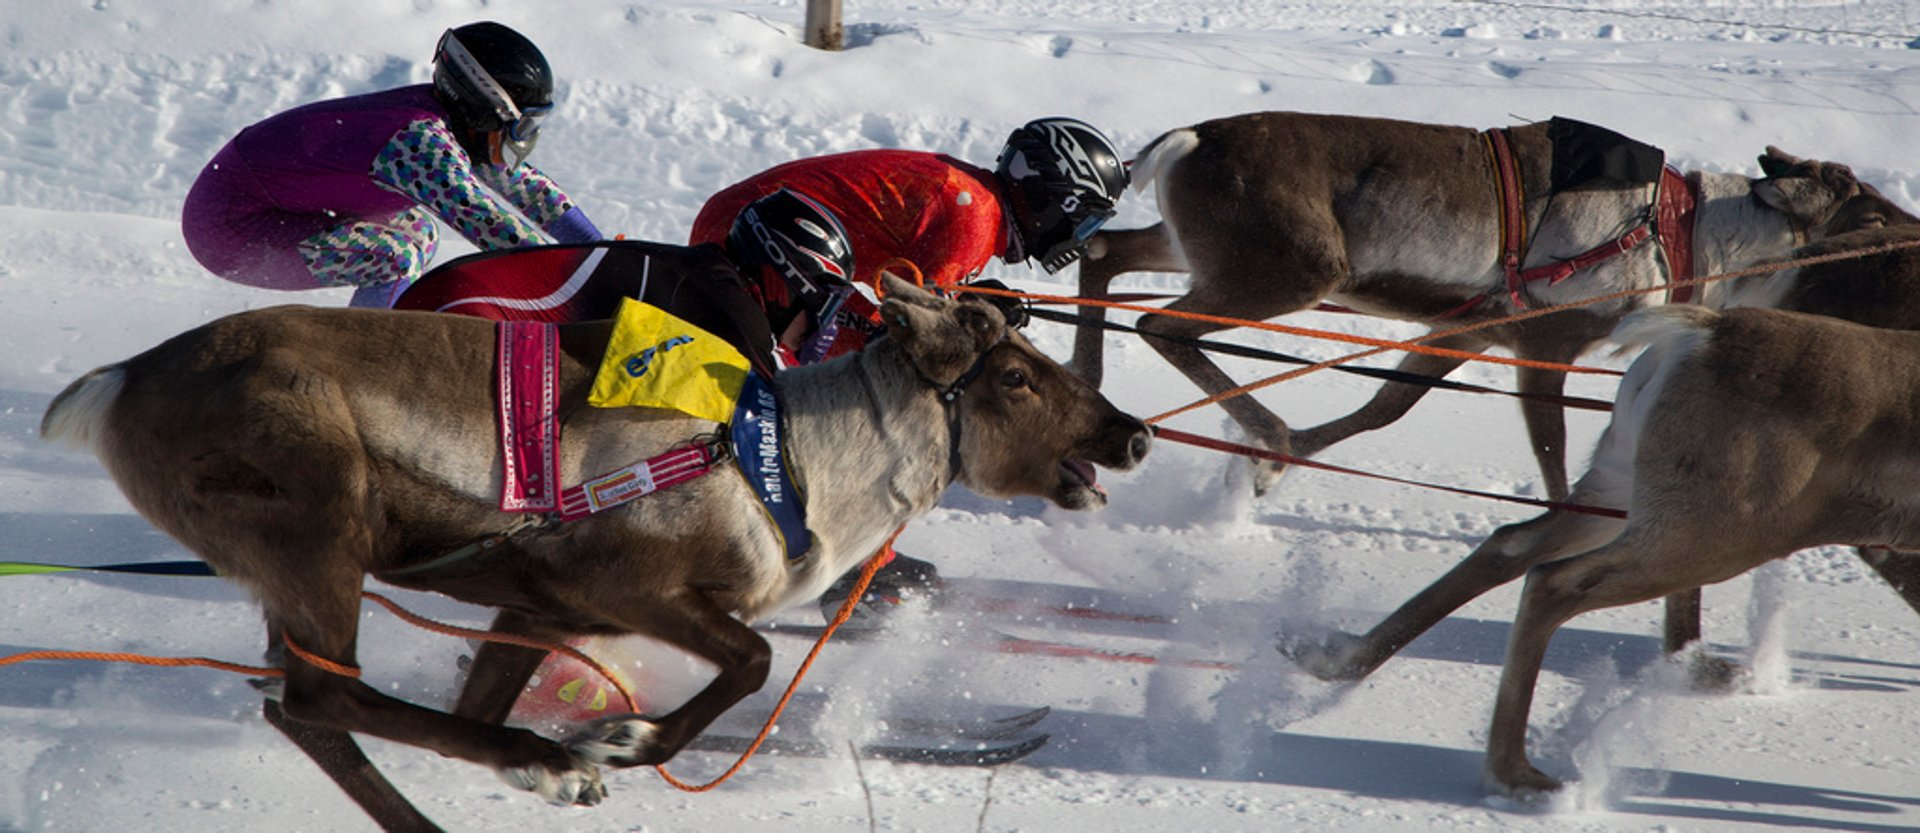 Best time for World Reindeer Racing Championships 2019